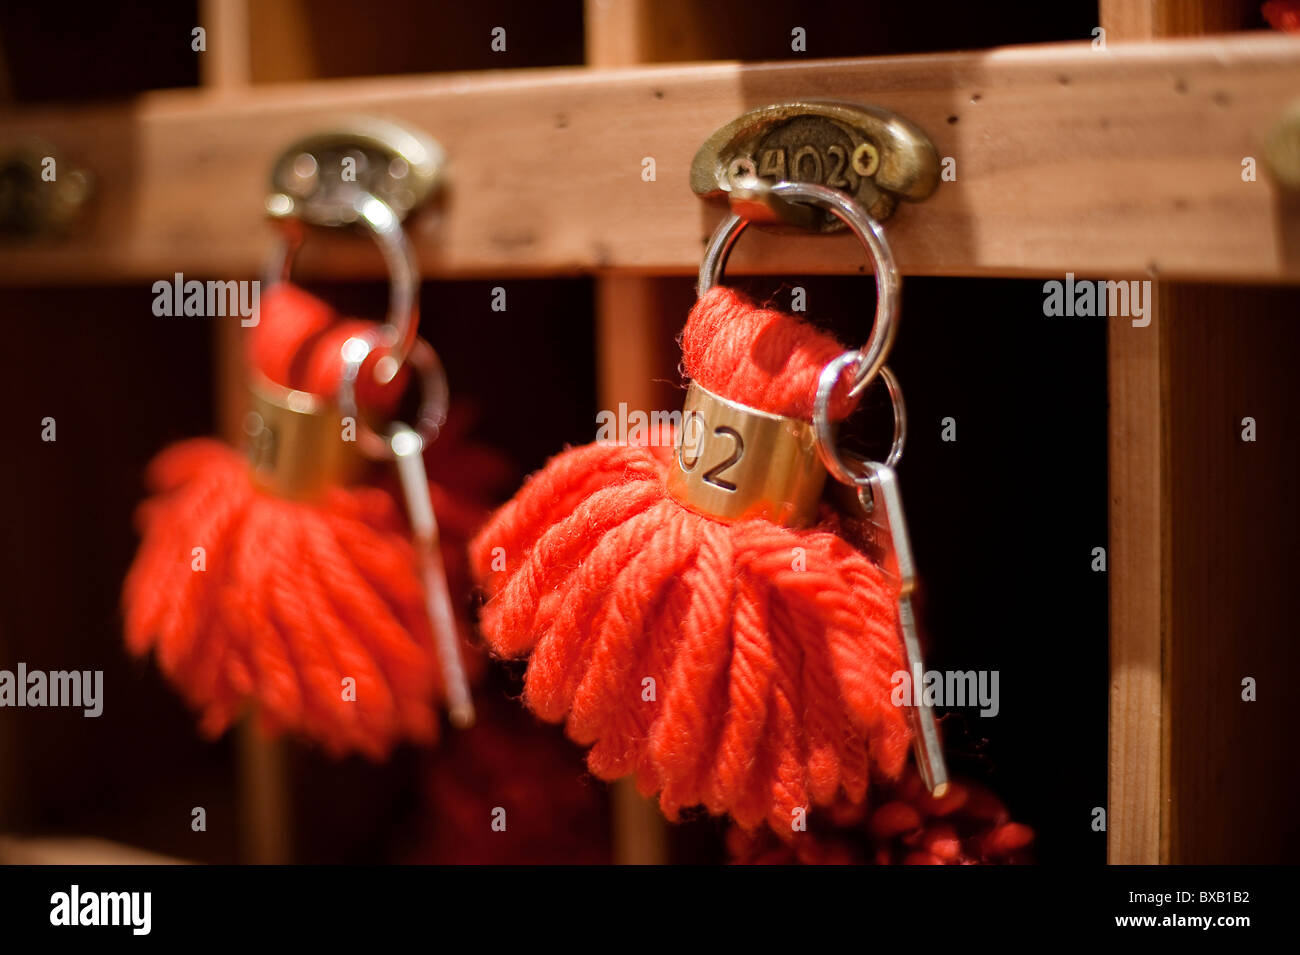 Key hooks at a hotel reception - Stock Image